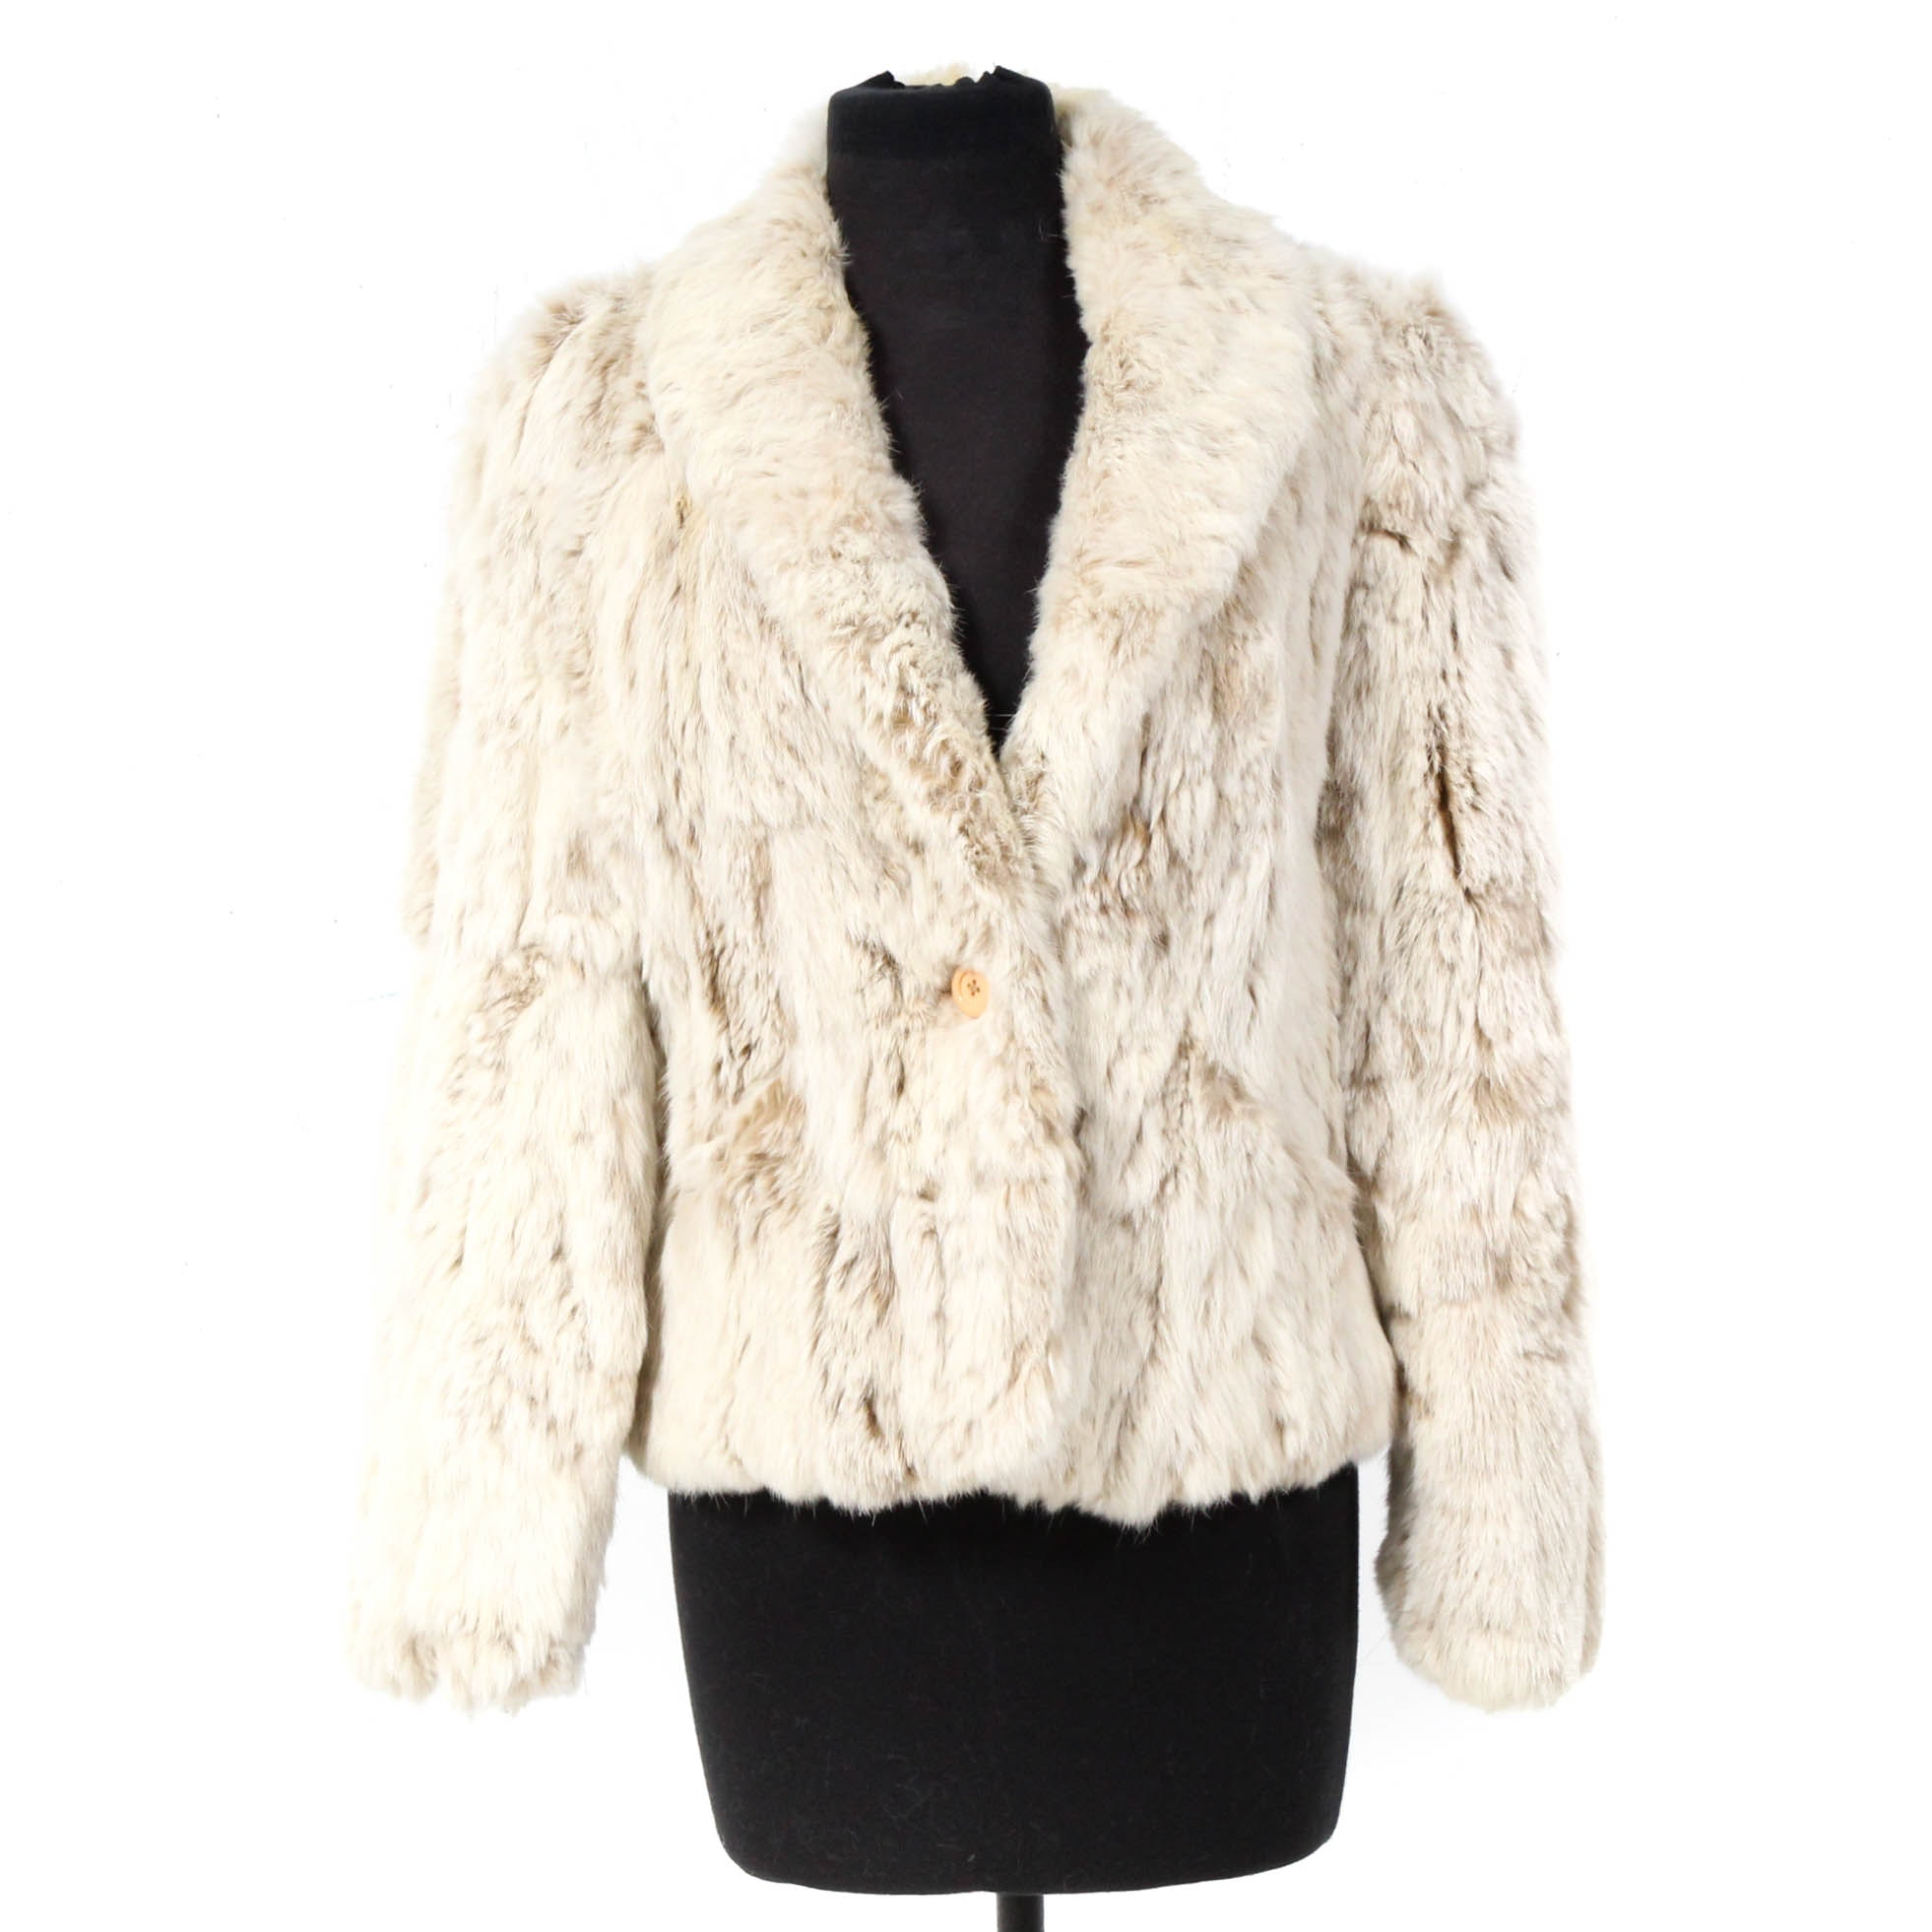 Mademoiselle Rabbit Fur Coat